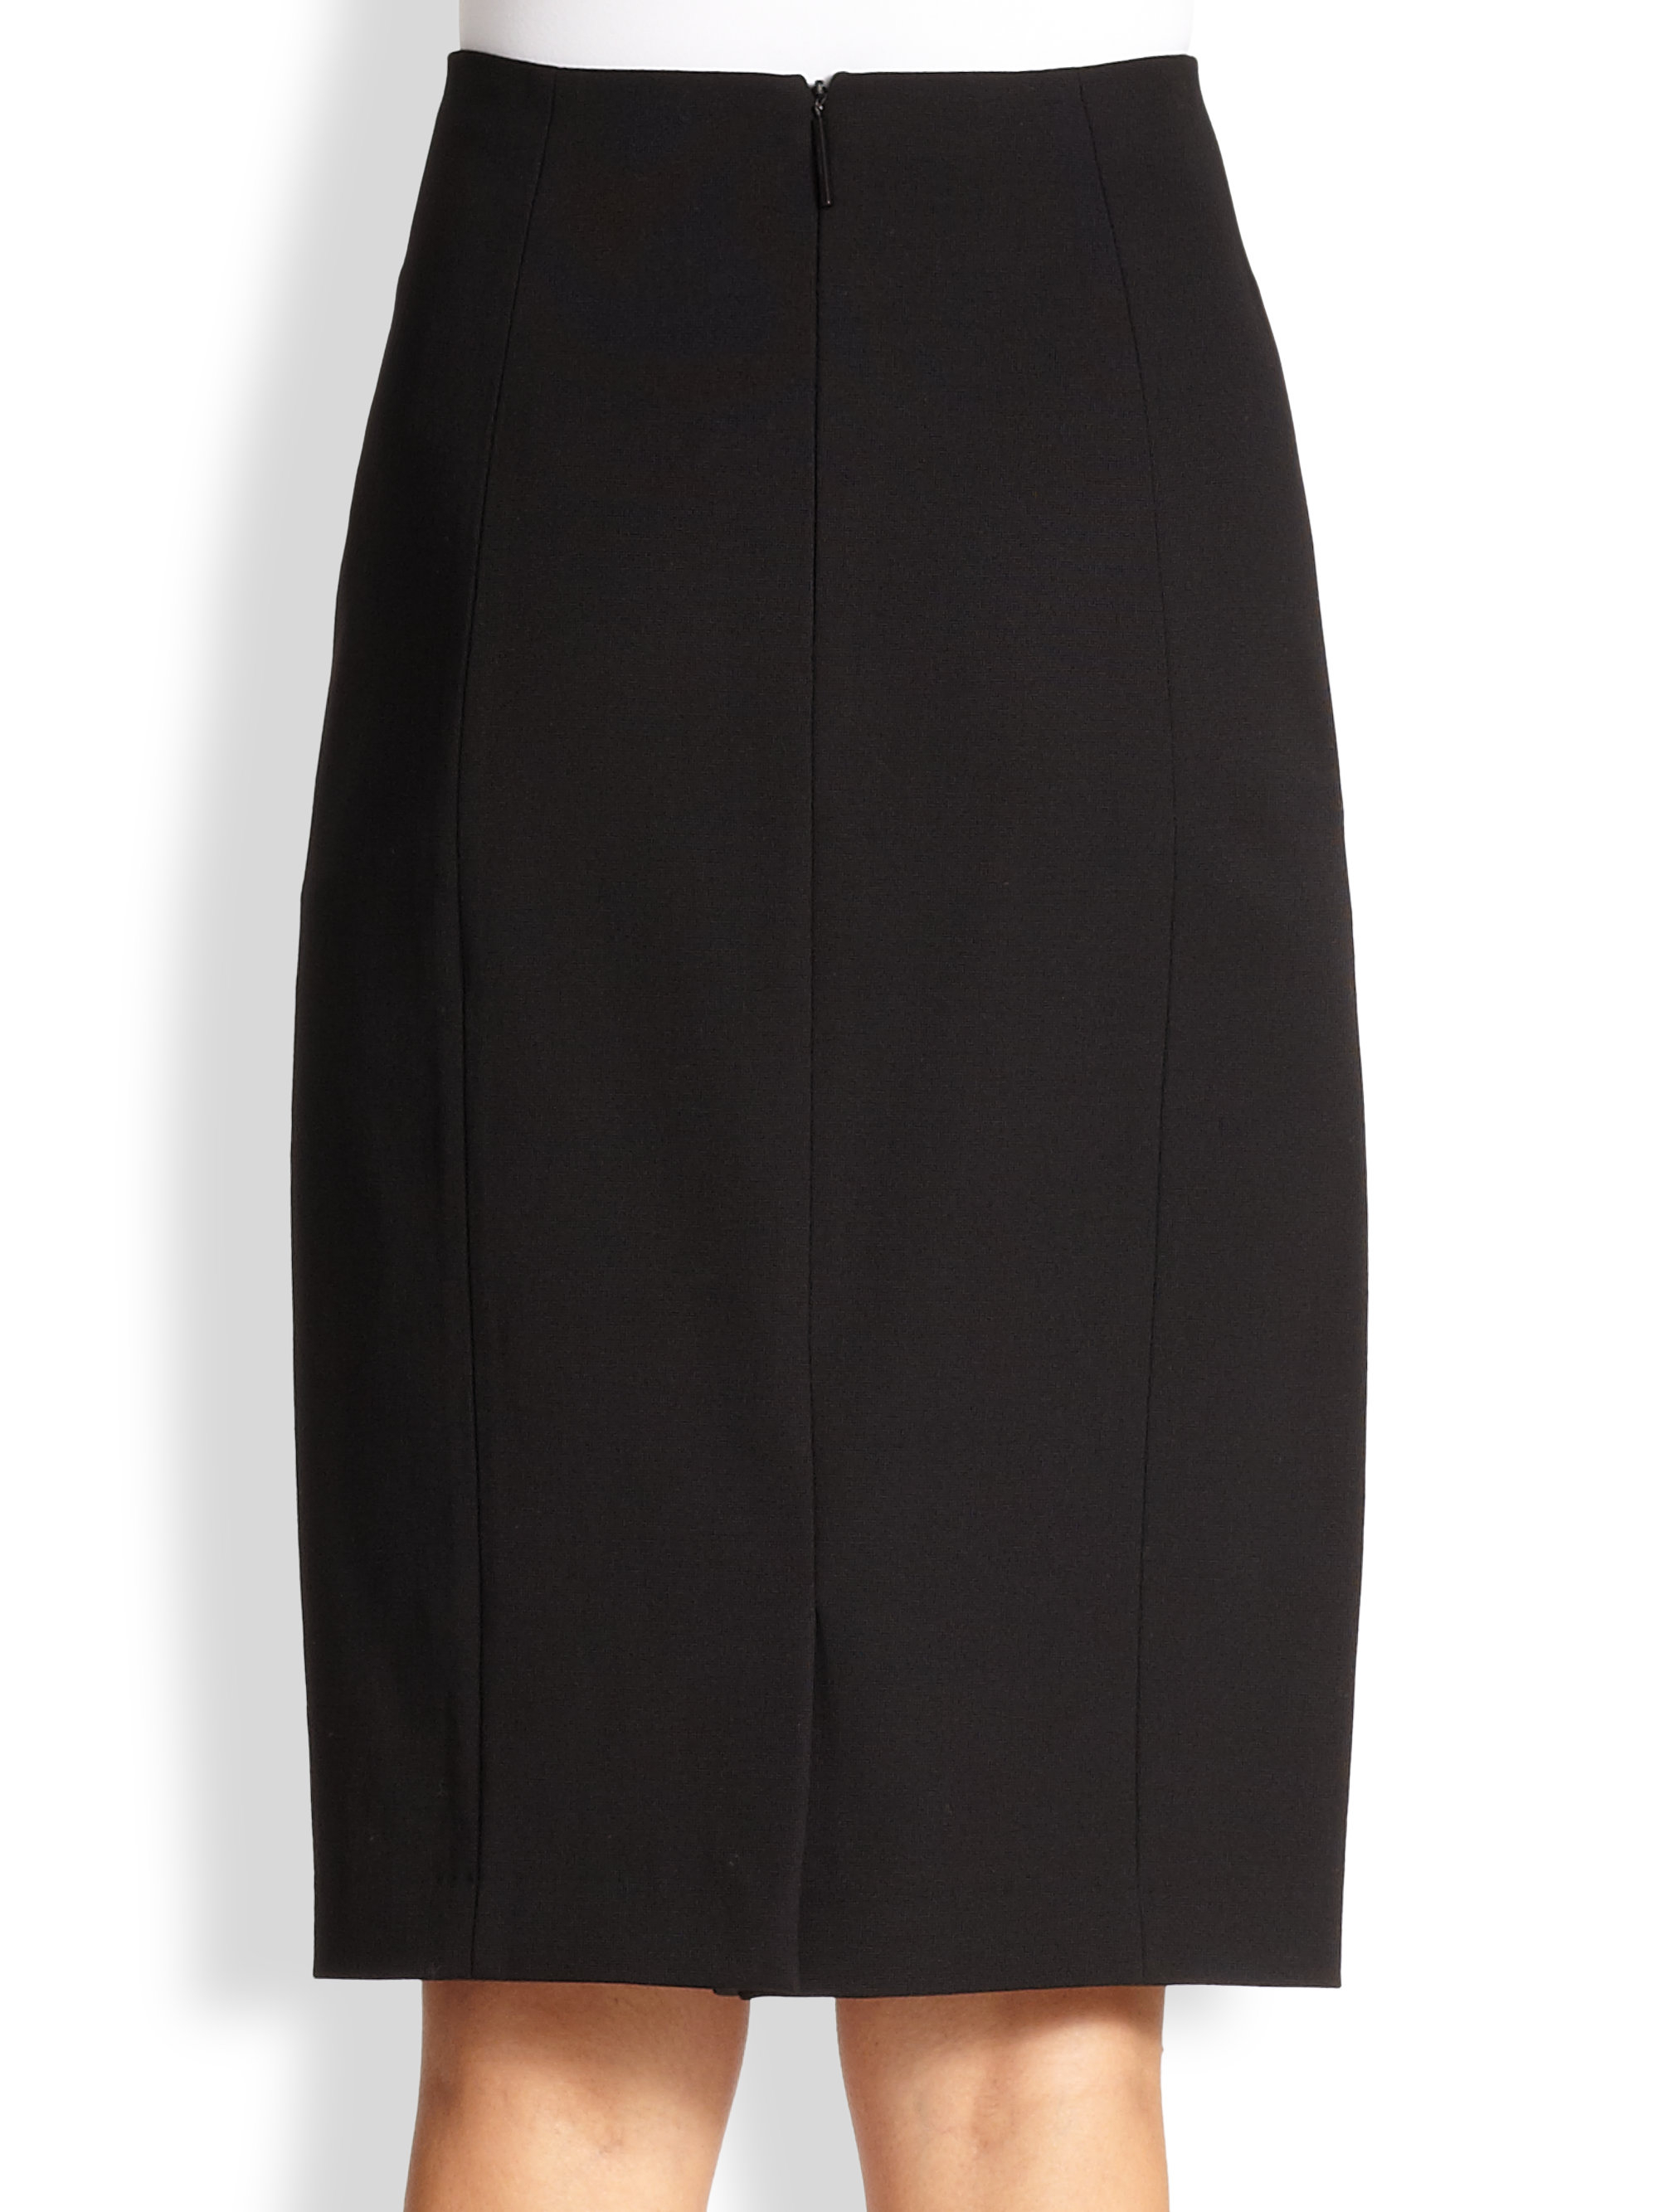 burberry leather trimmed pencil skirt in black lyst